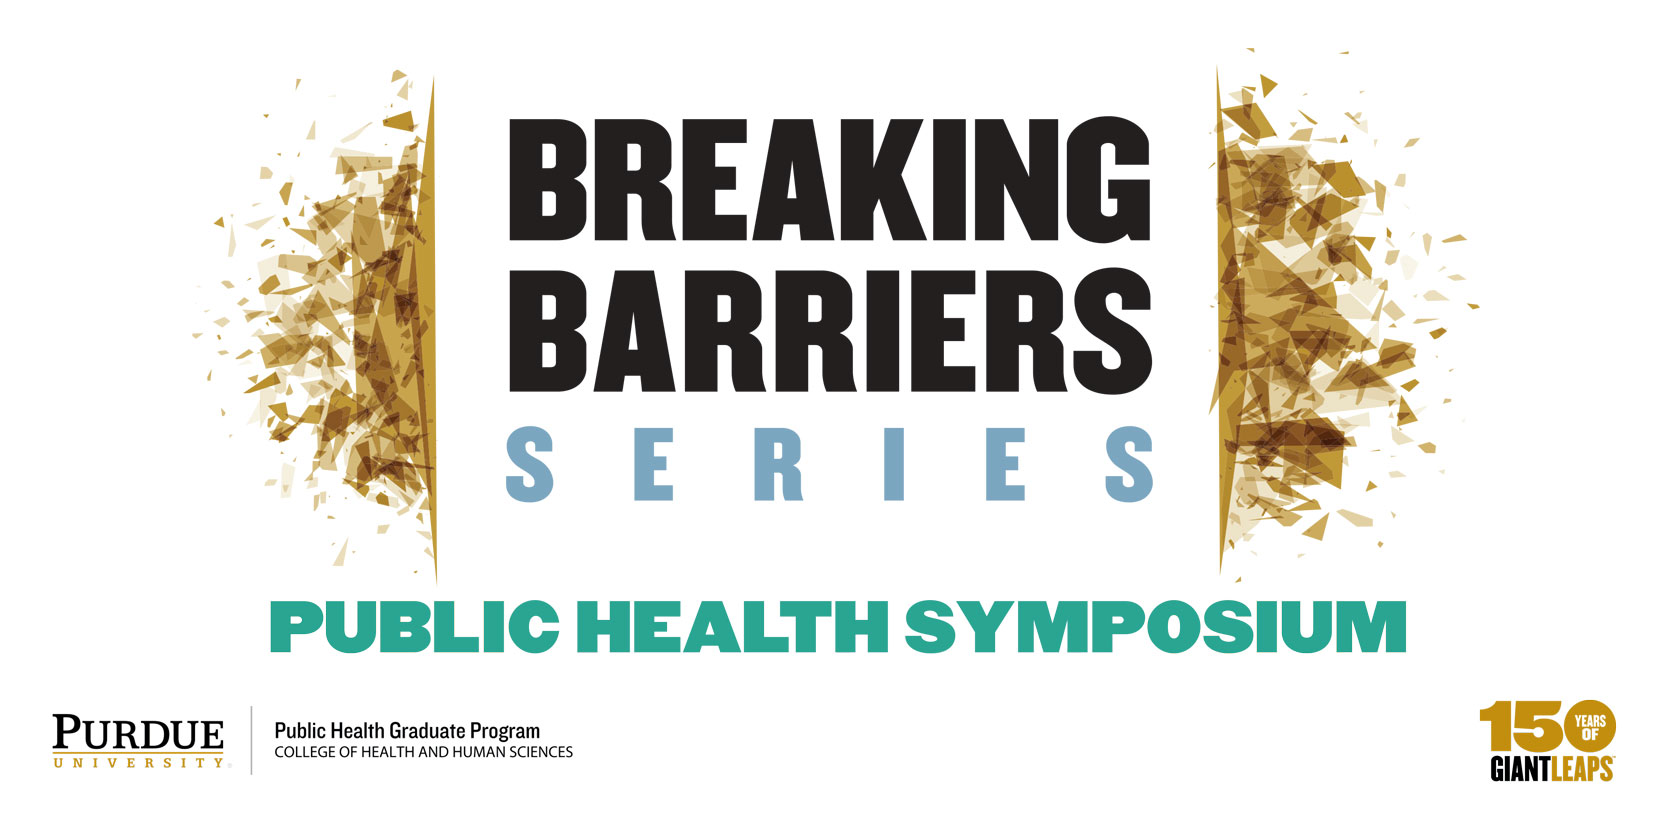 Public Health Symposium, April 22, 2019